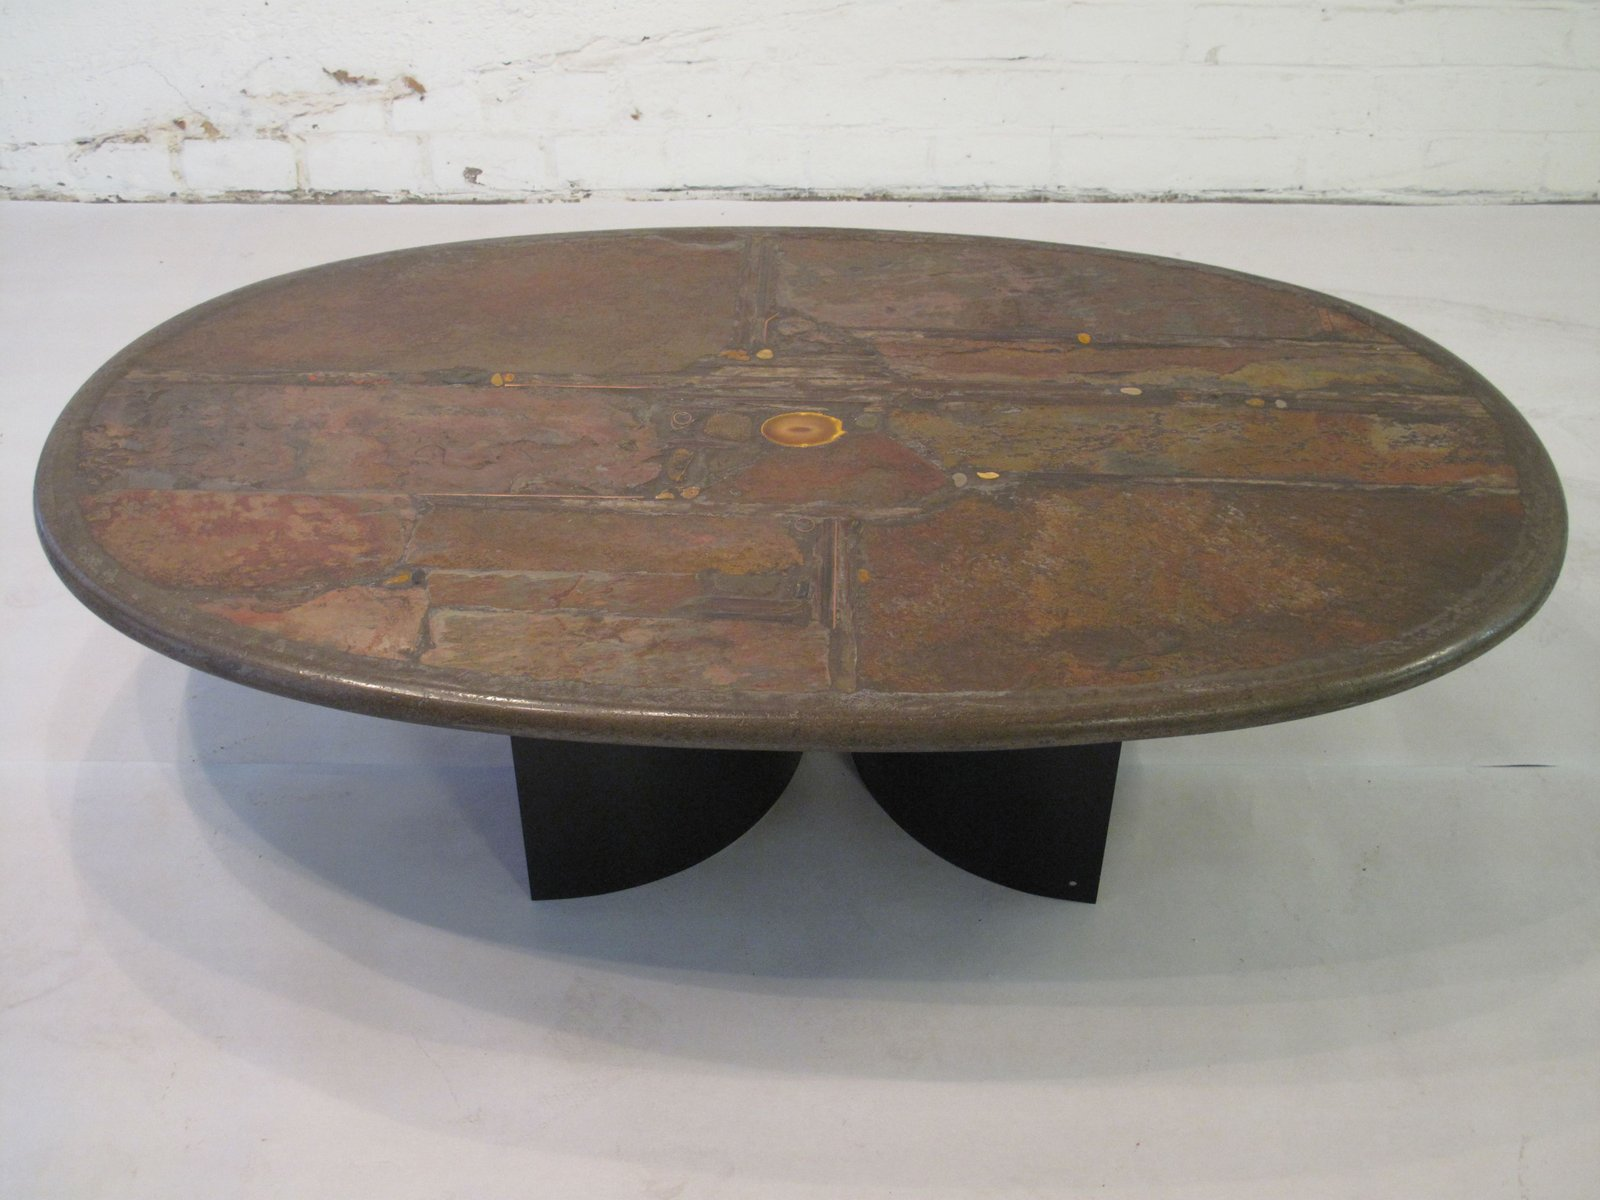 Stone Shale Brass Copper and Agate Coffee Table by Paul Kingma